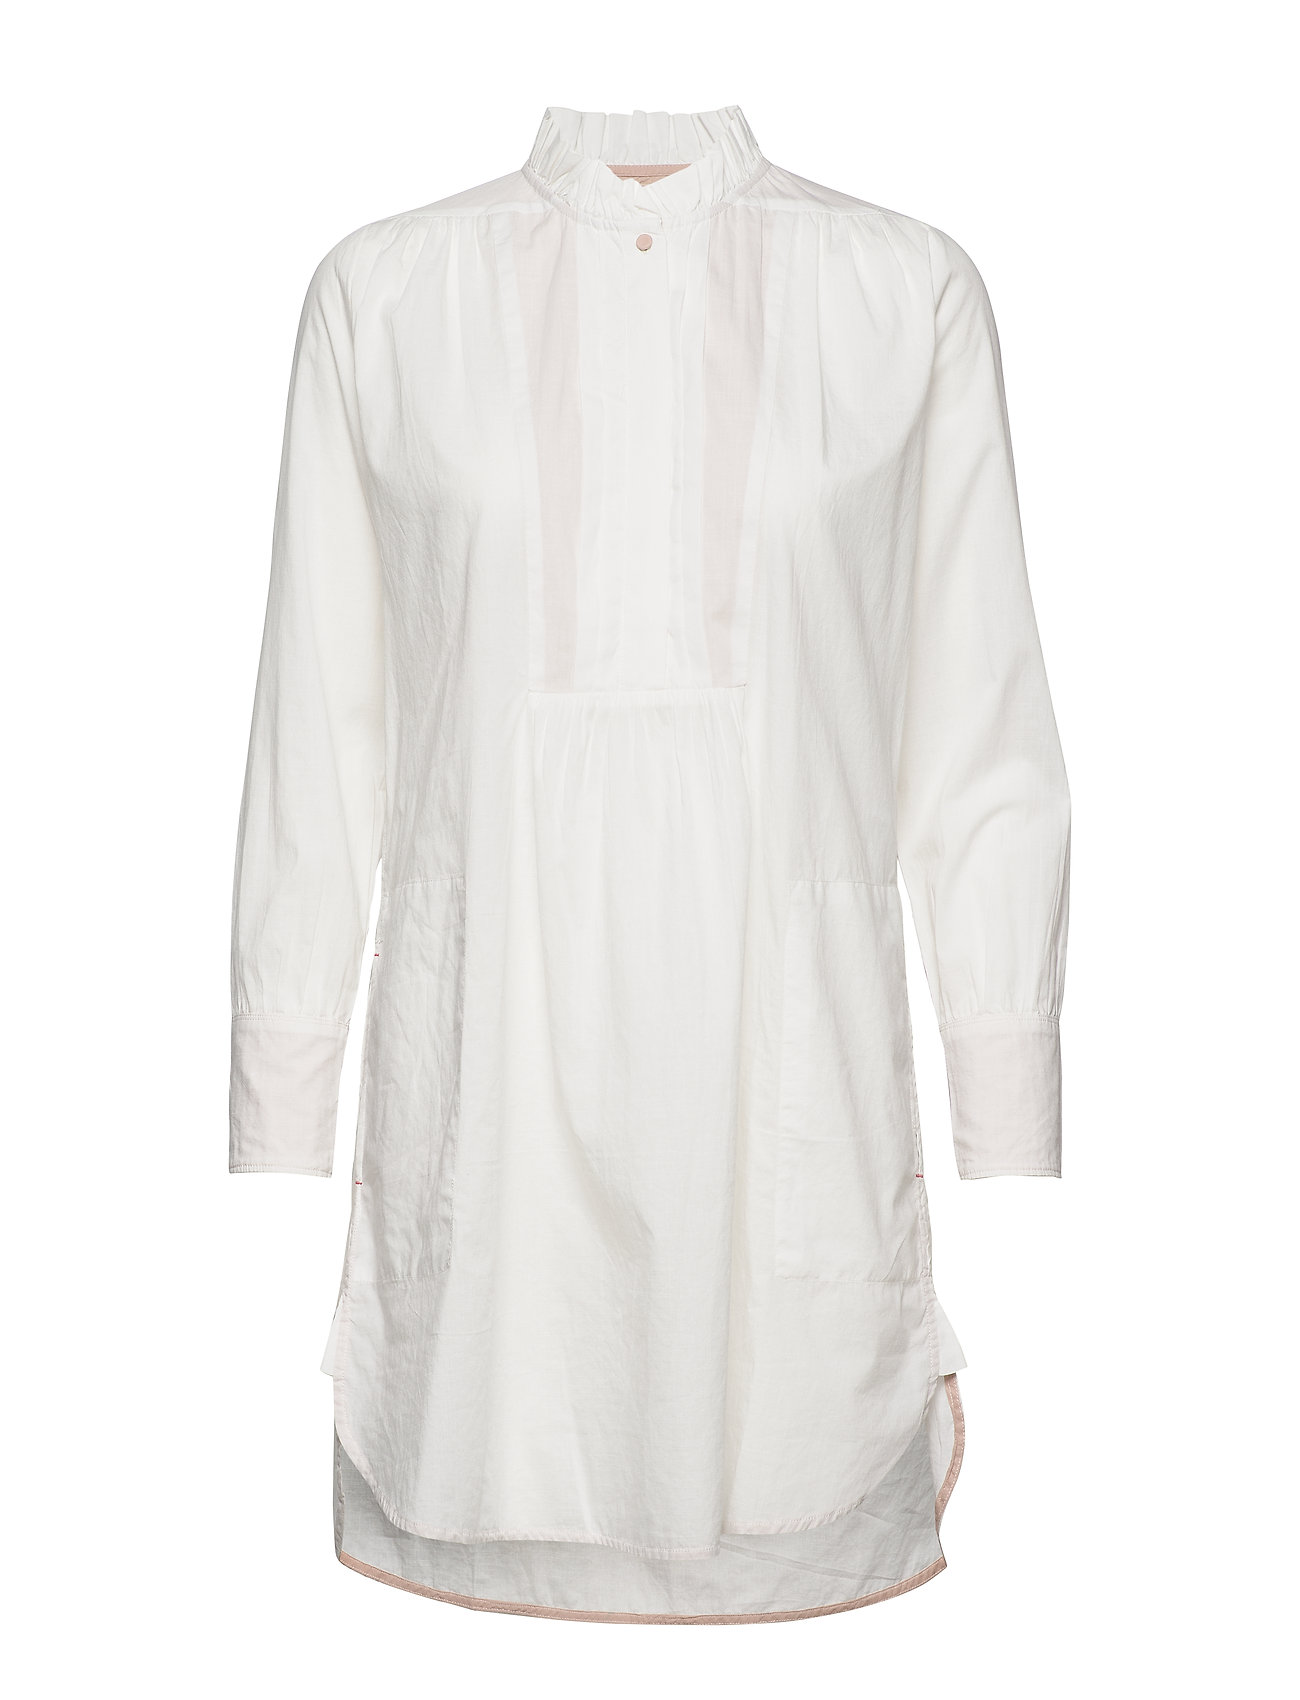 Noa Noa Tunic - CLOUD DANCER